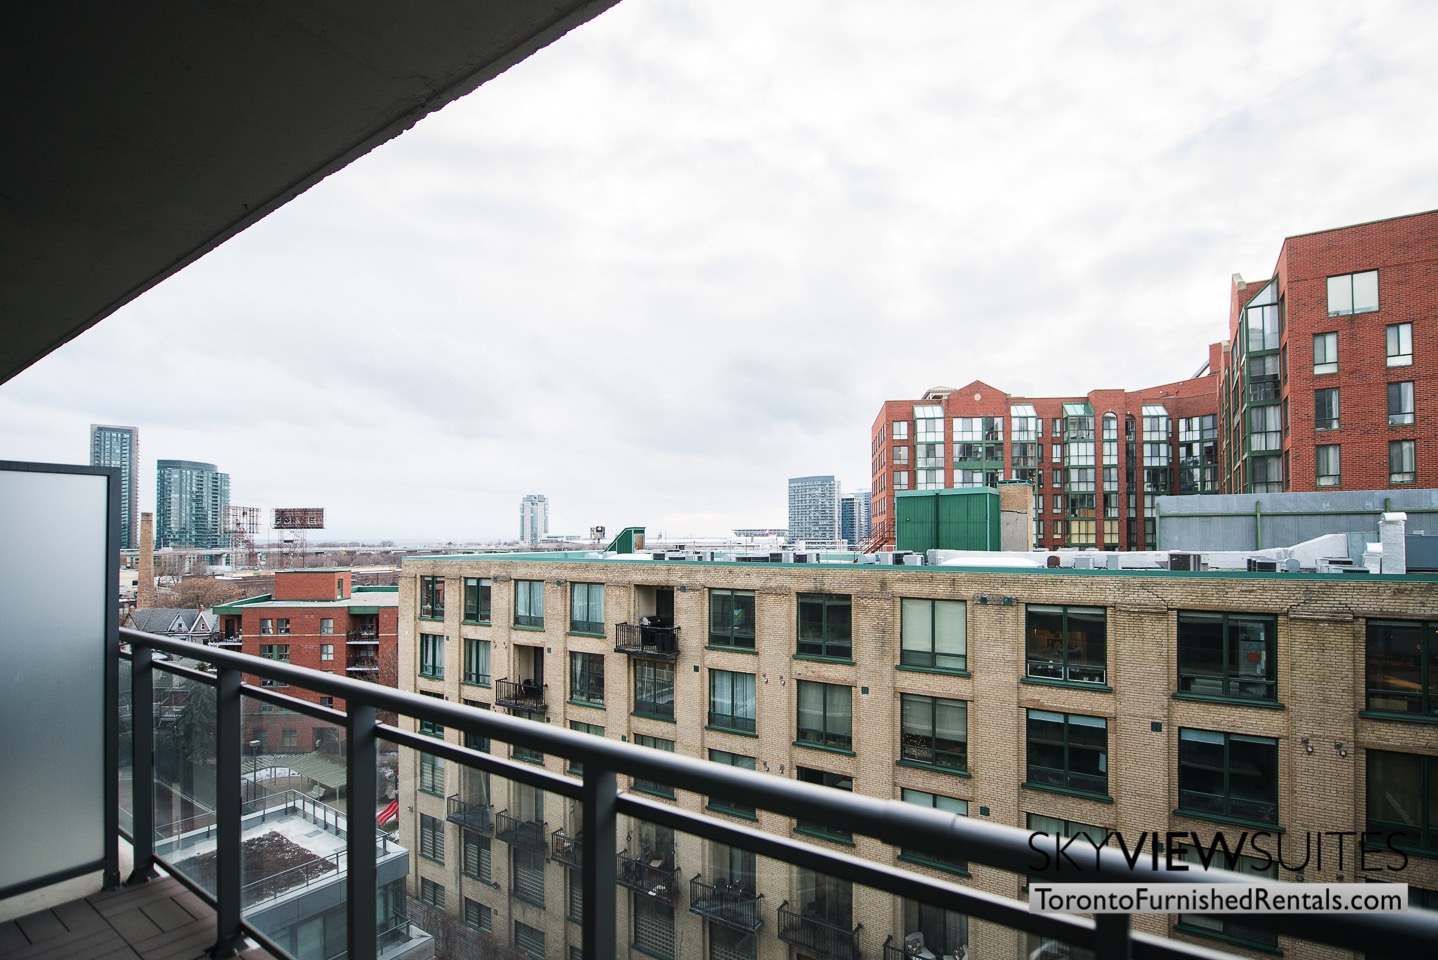 urnished-apartments-view-King-west